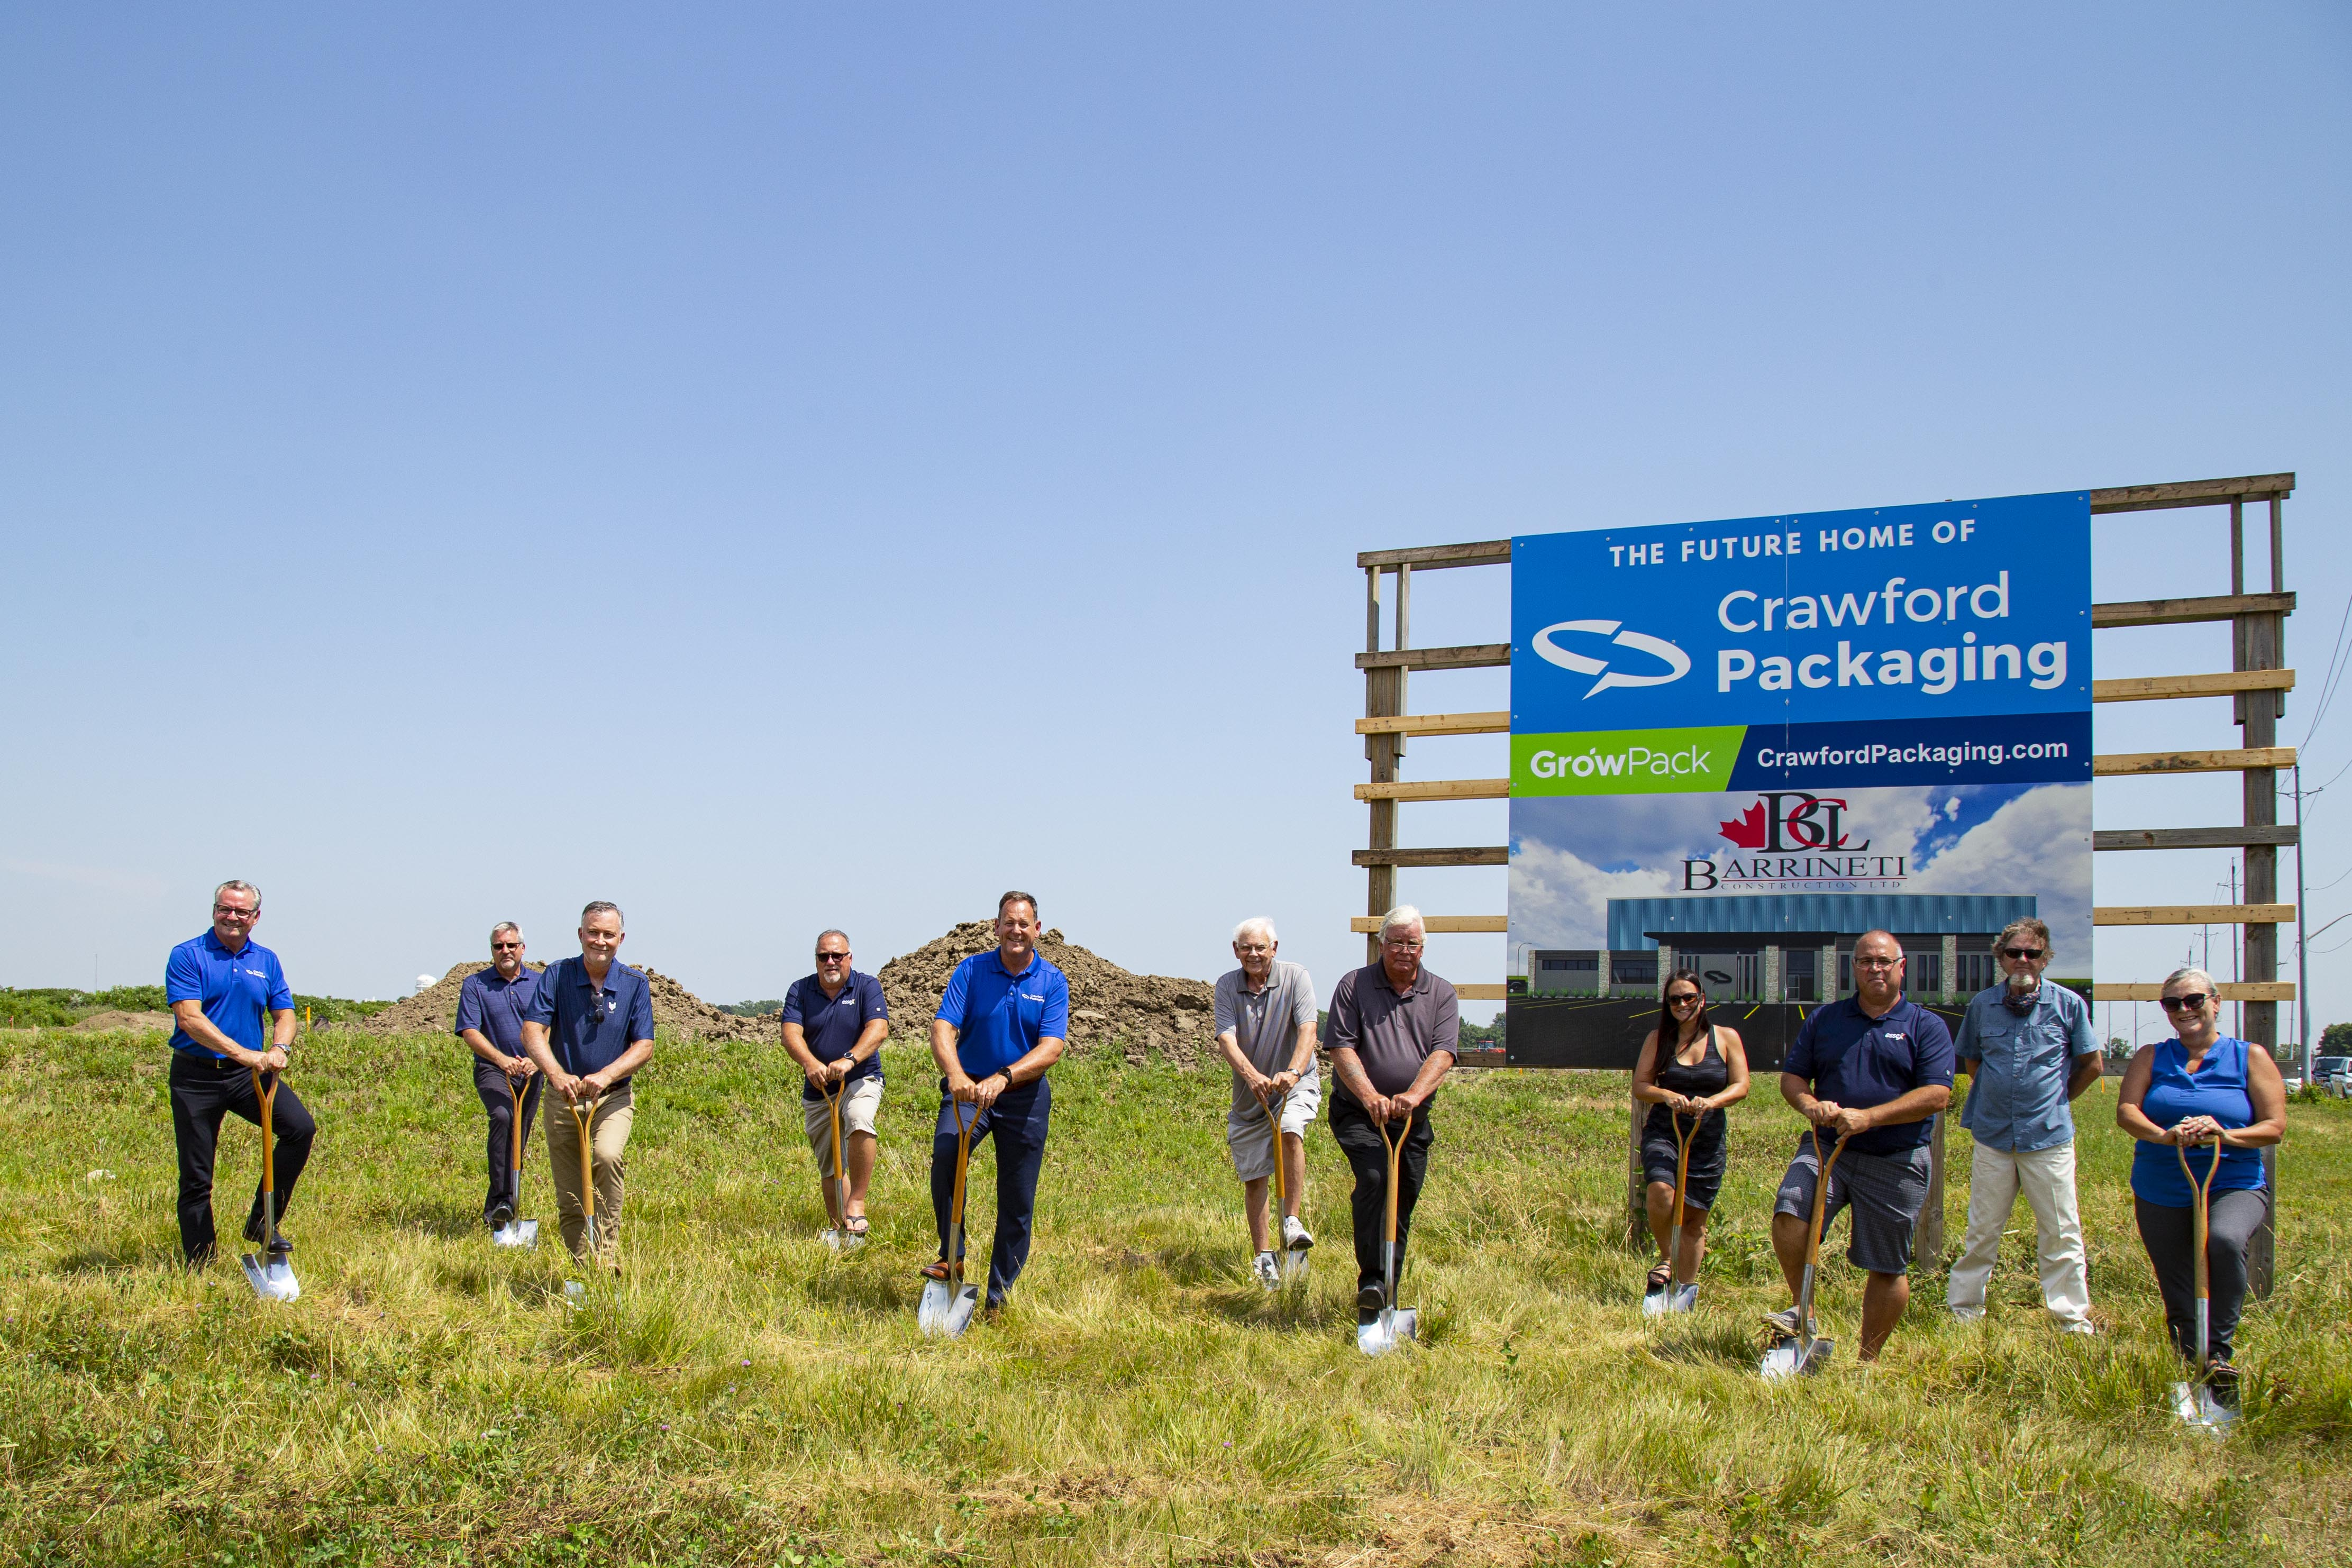 Crawford Representatives and Council Members holding shovels for ground breaking.